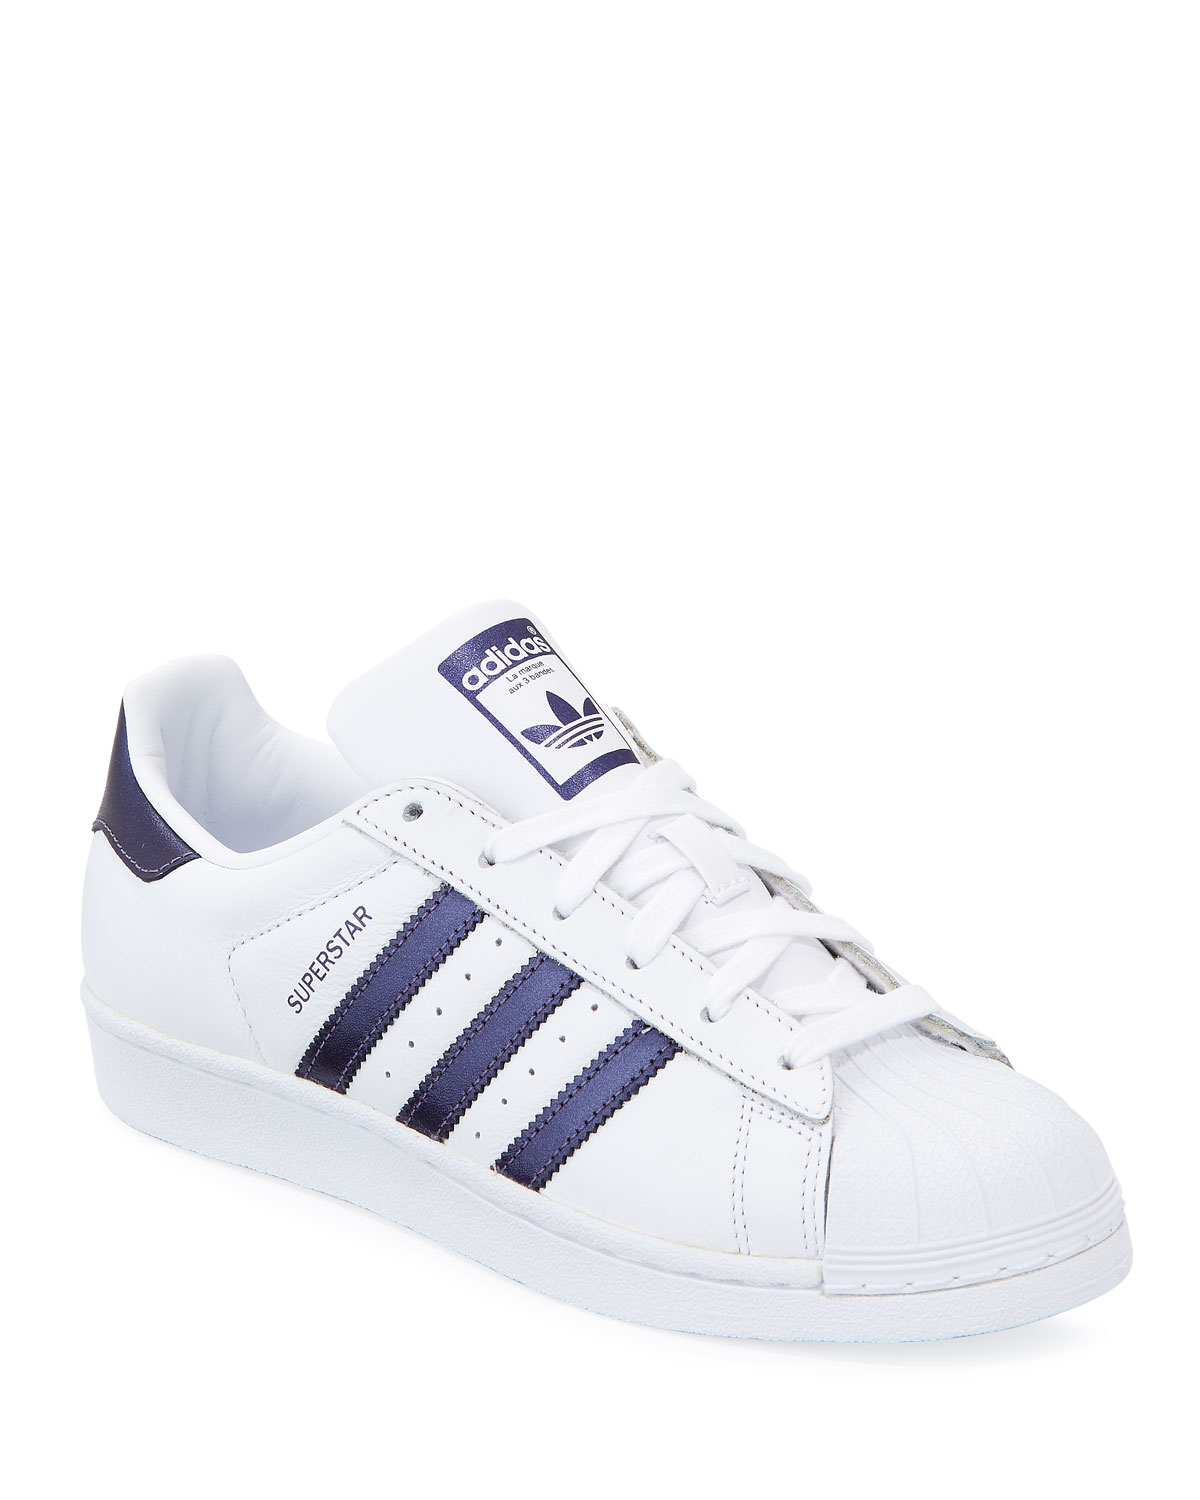 adidas superstar platform